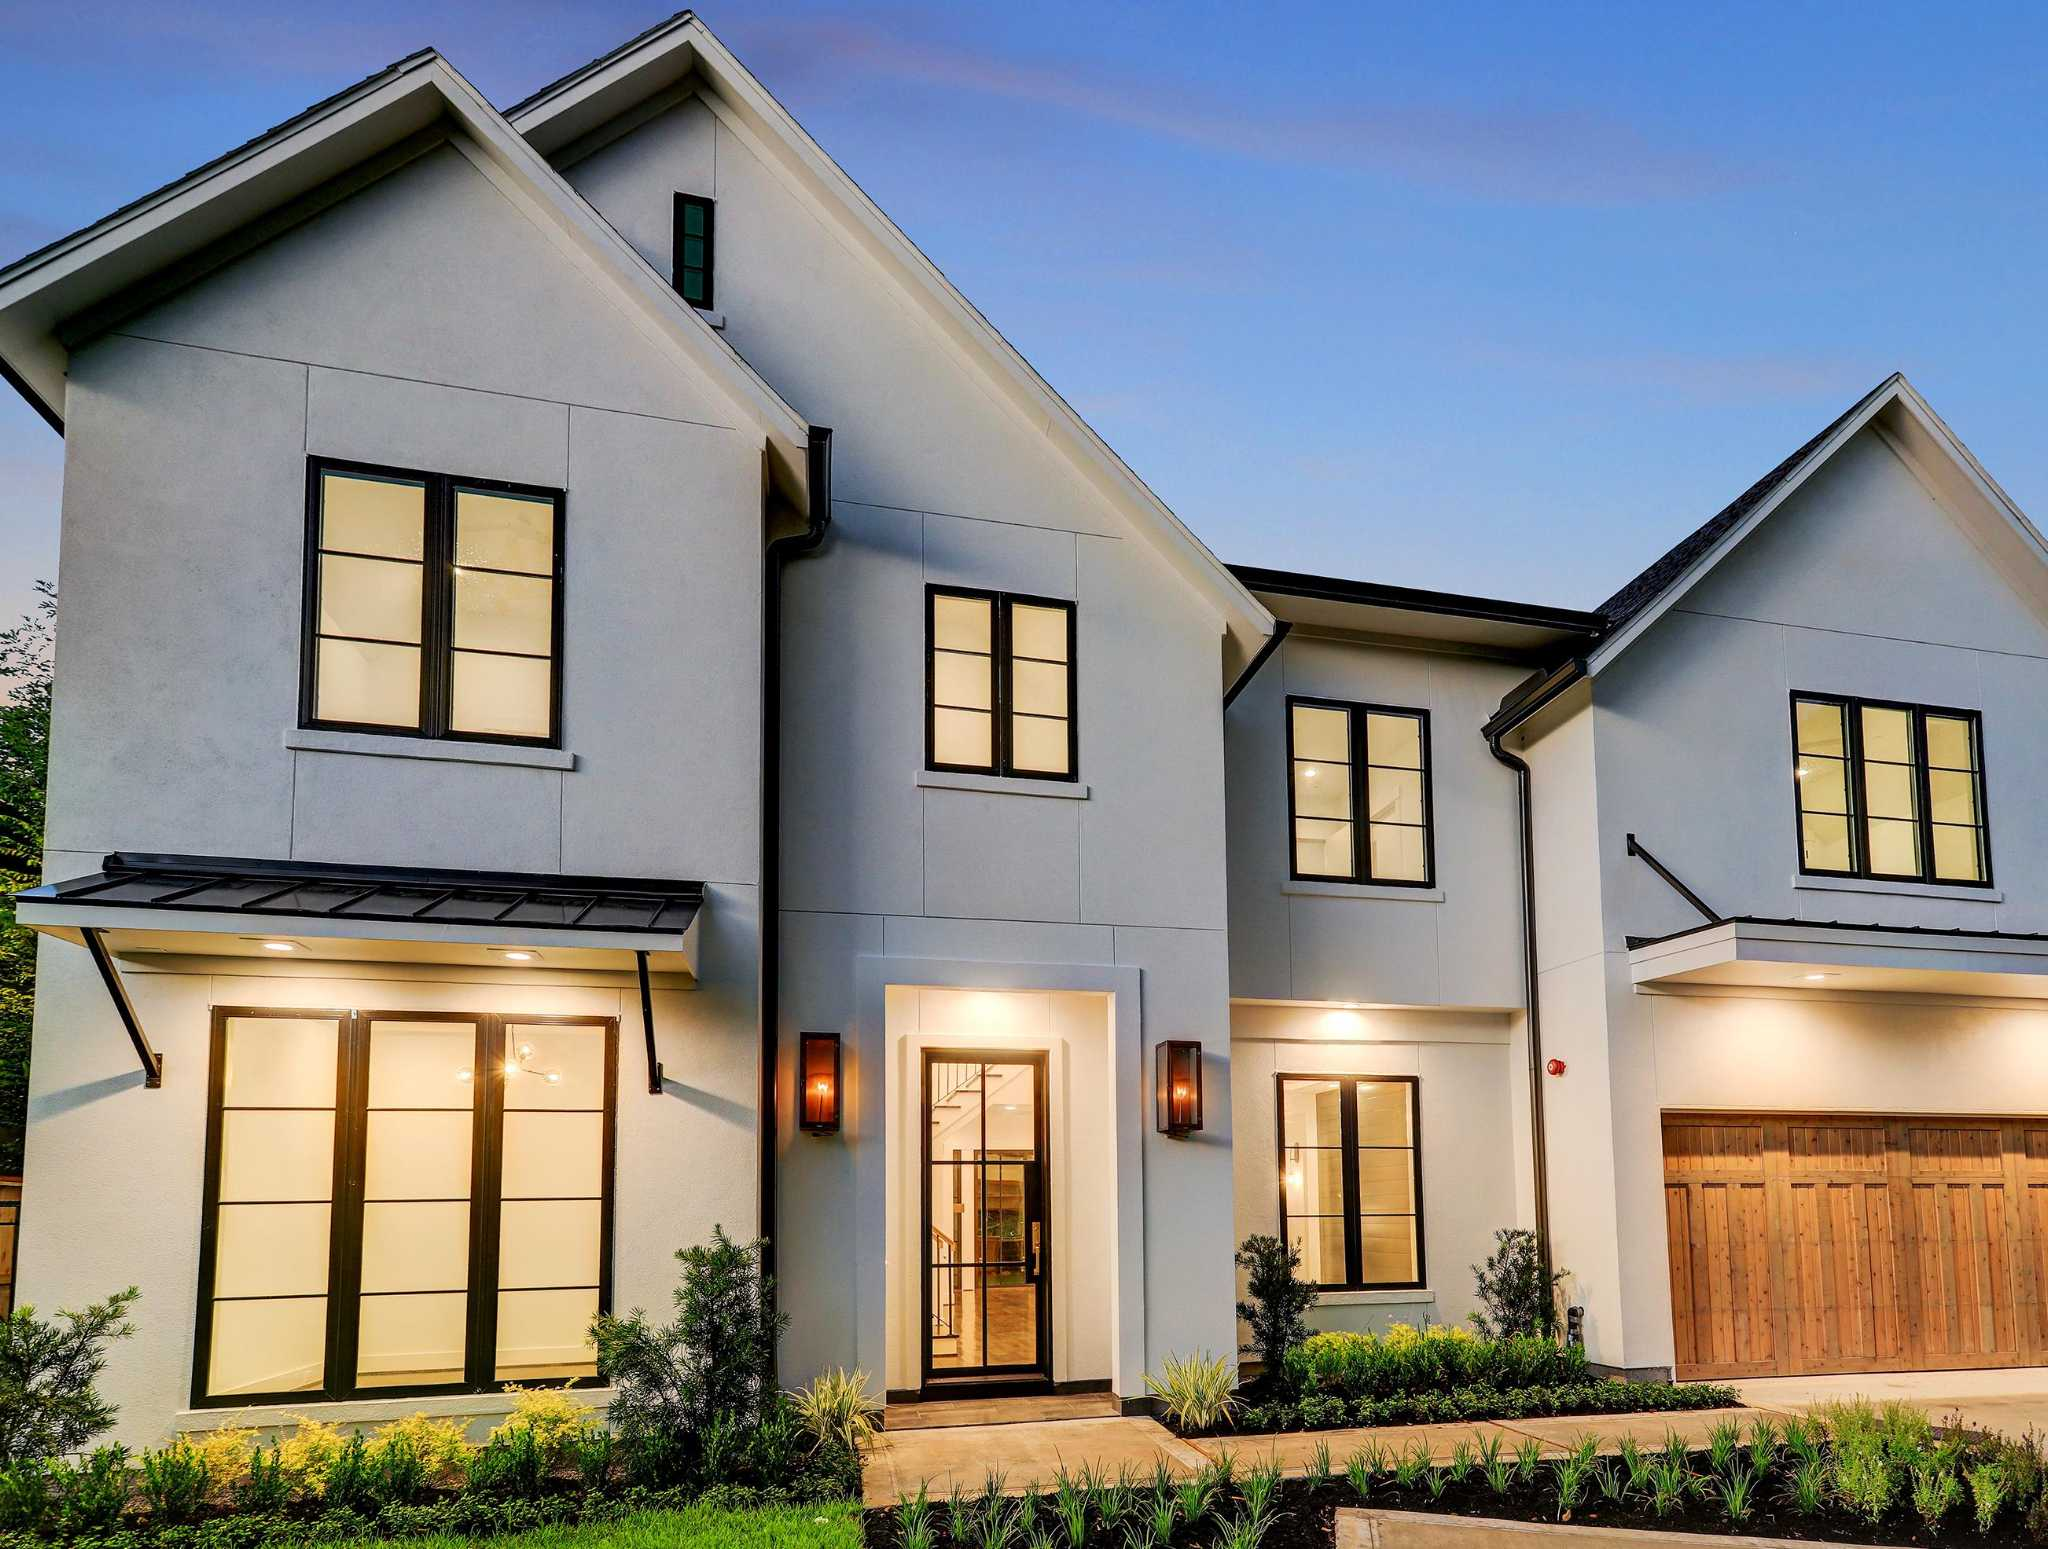 Jamestown Estate Homes highlights new home in Piney Point